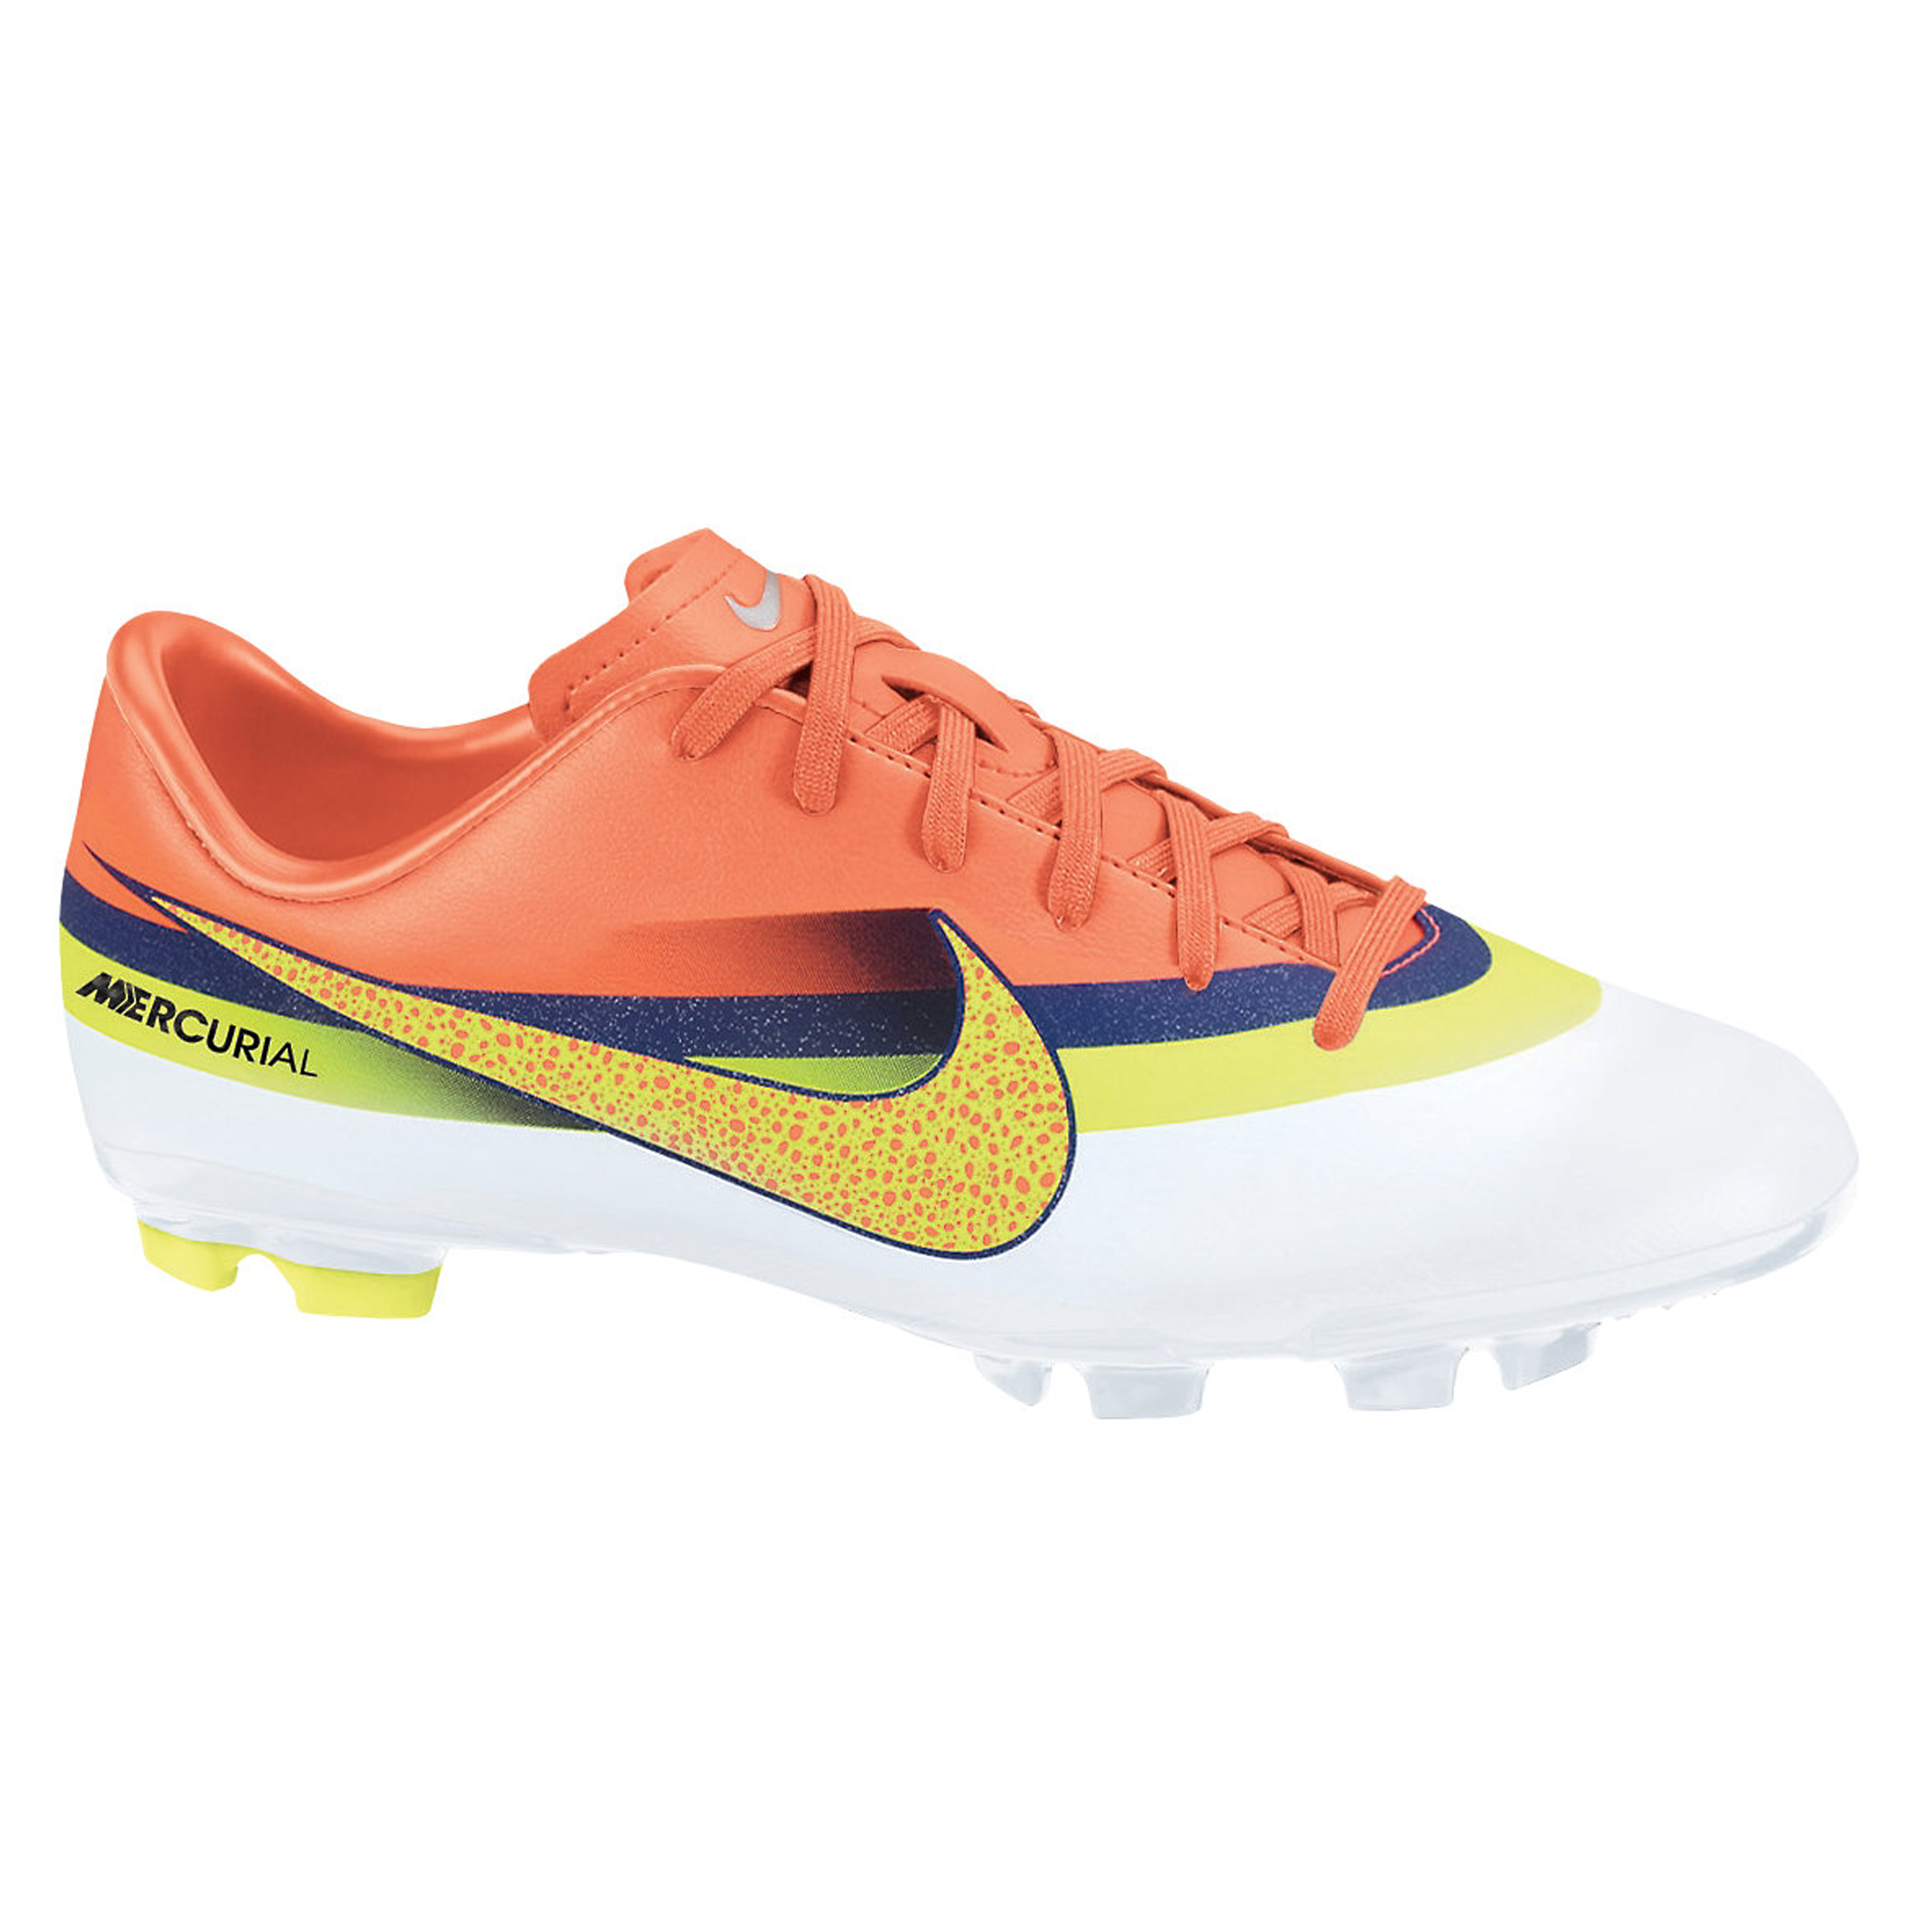 Nike Mercurial Victory IV CR7 Firm Ground Football Boots - White/Volt/Loyal Blue/Total Crimson - Kids